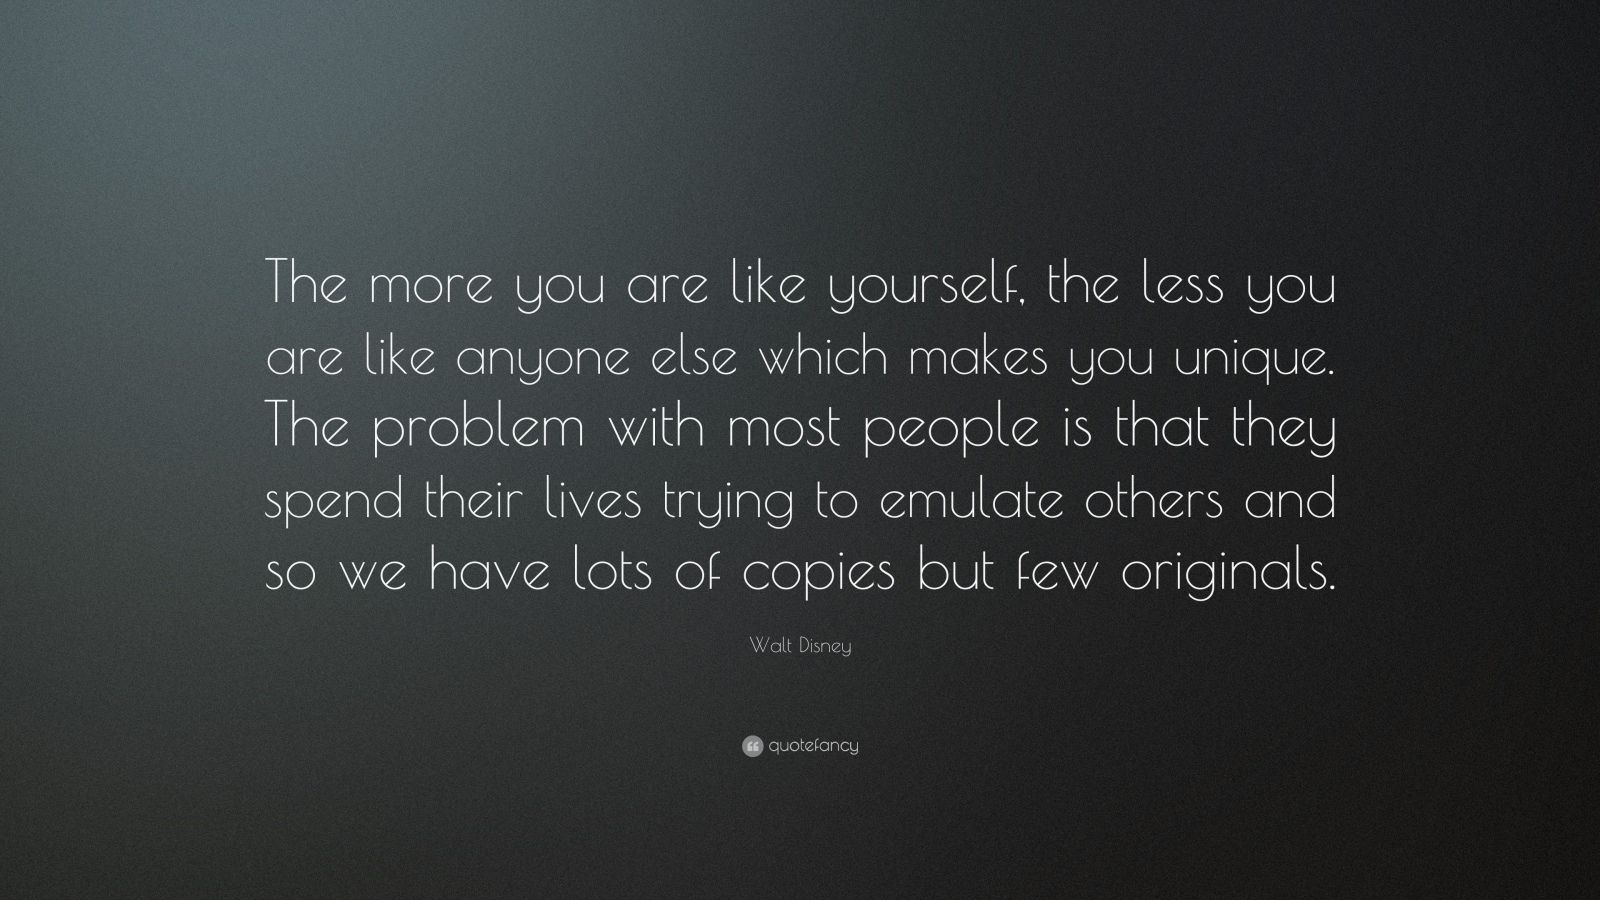 Nice Wallpapers With Inspiring Quotes Walt Disney Quote The More You Are Like Yourself The